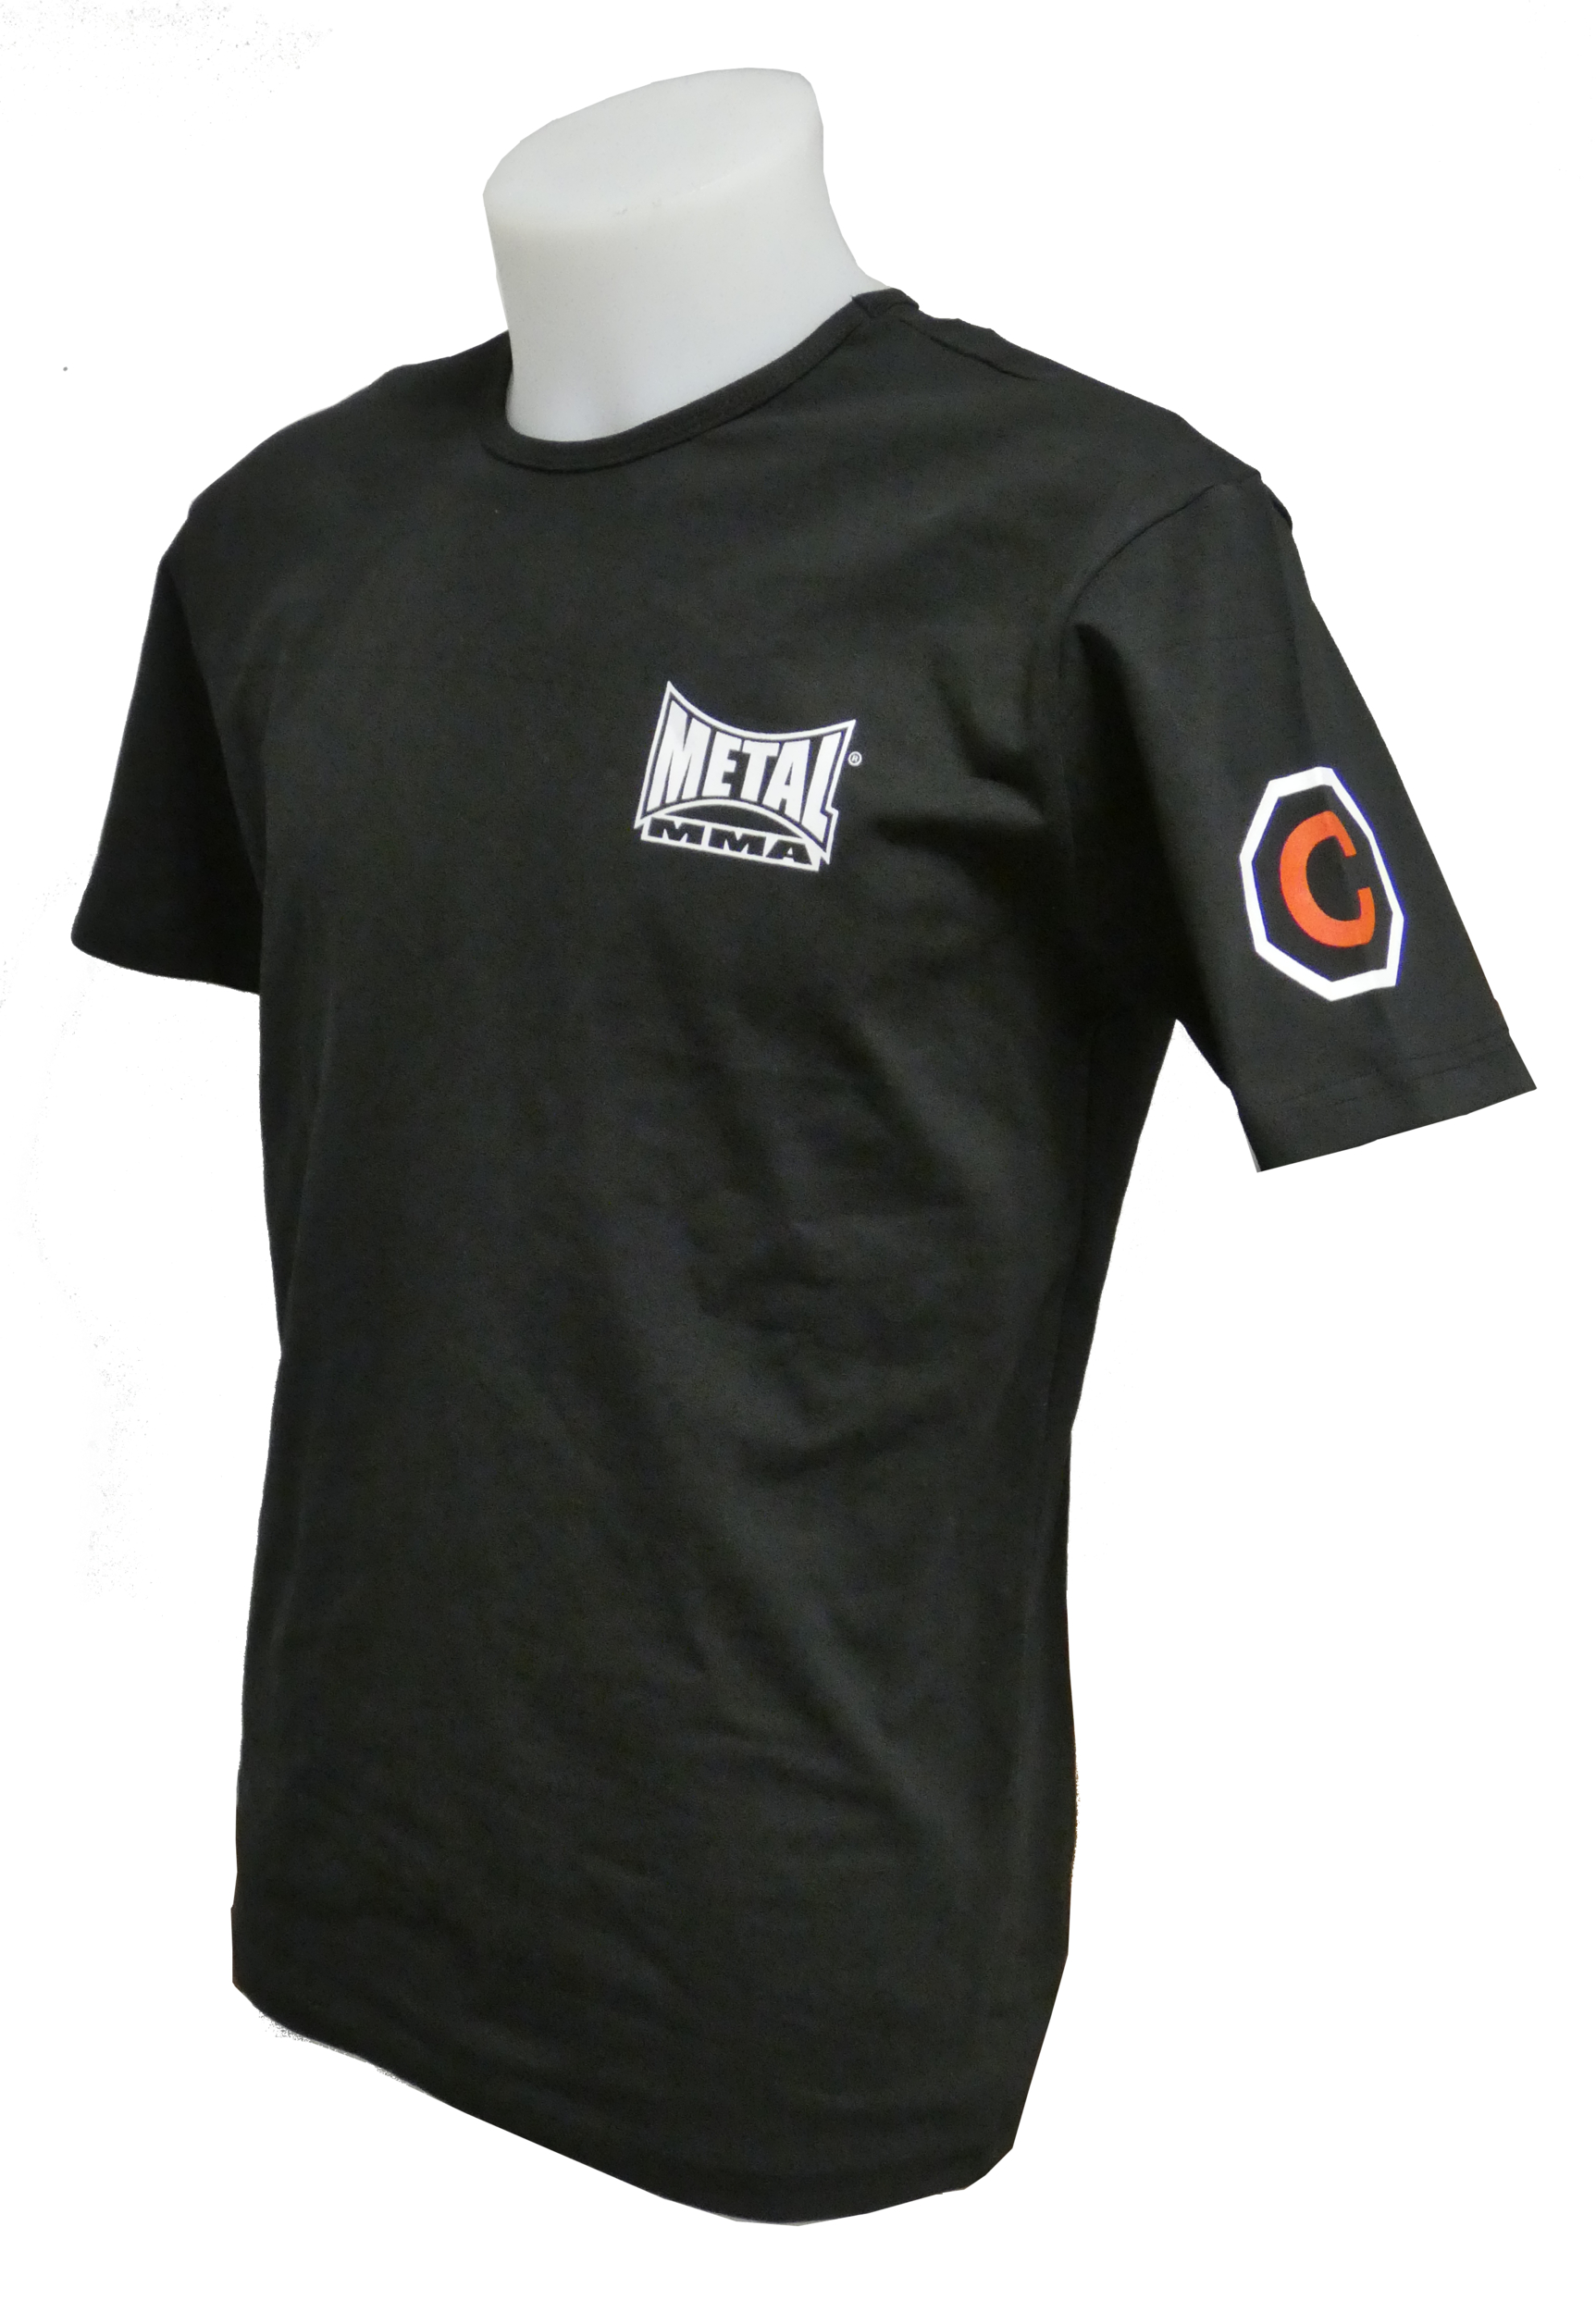 T-shirt Métal boxe Courage